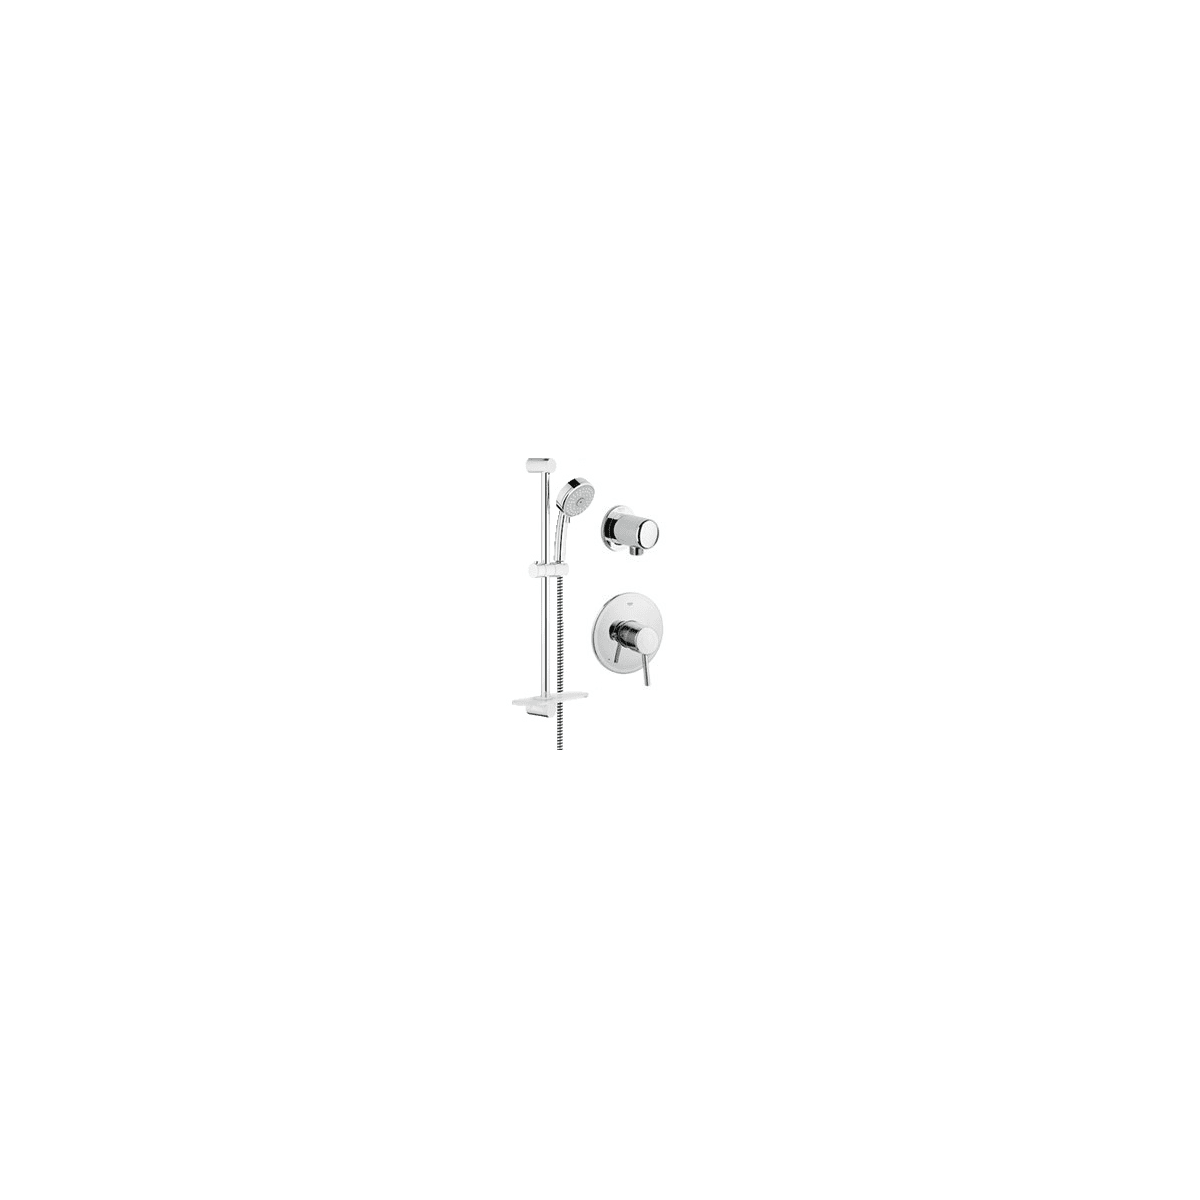 Grohe Gr Pb010sc Starlight Chrome Concetto Pressure Balanced Shower